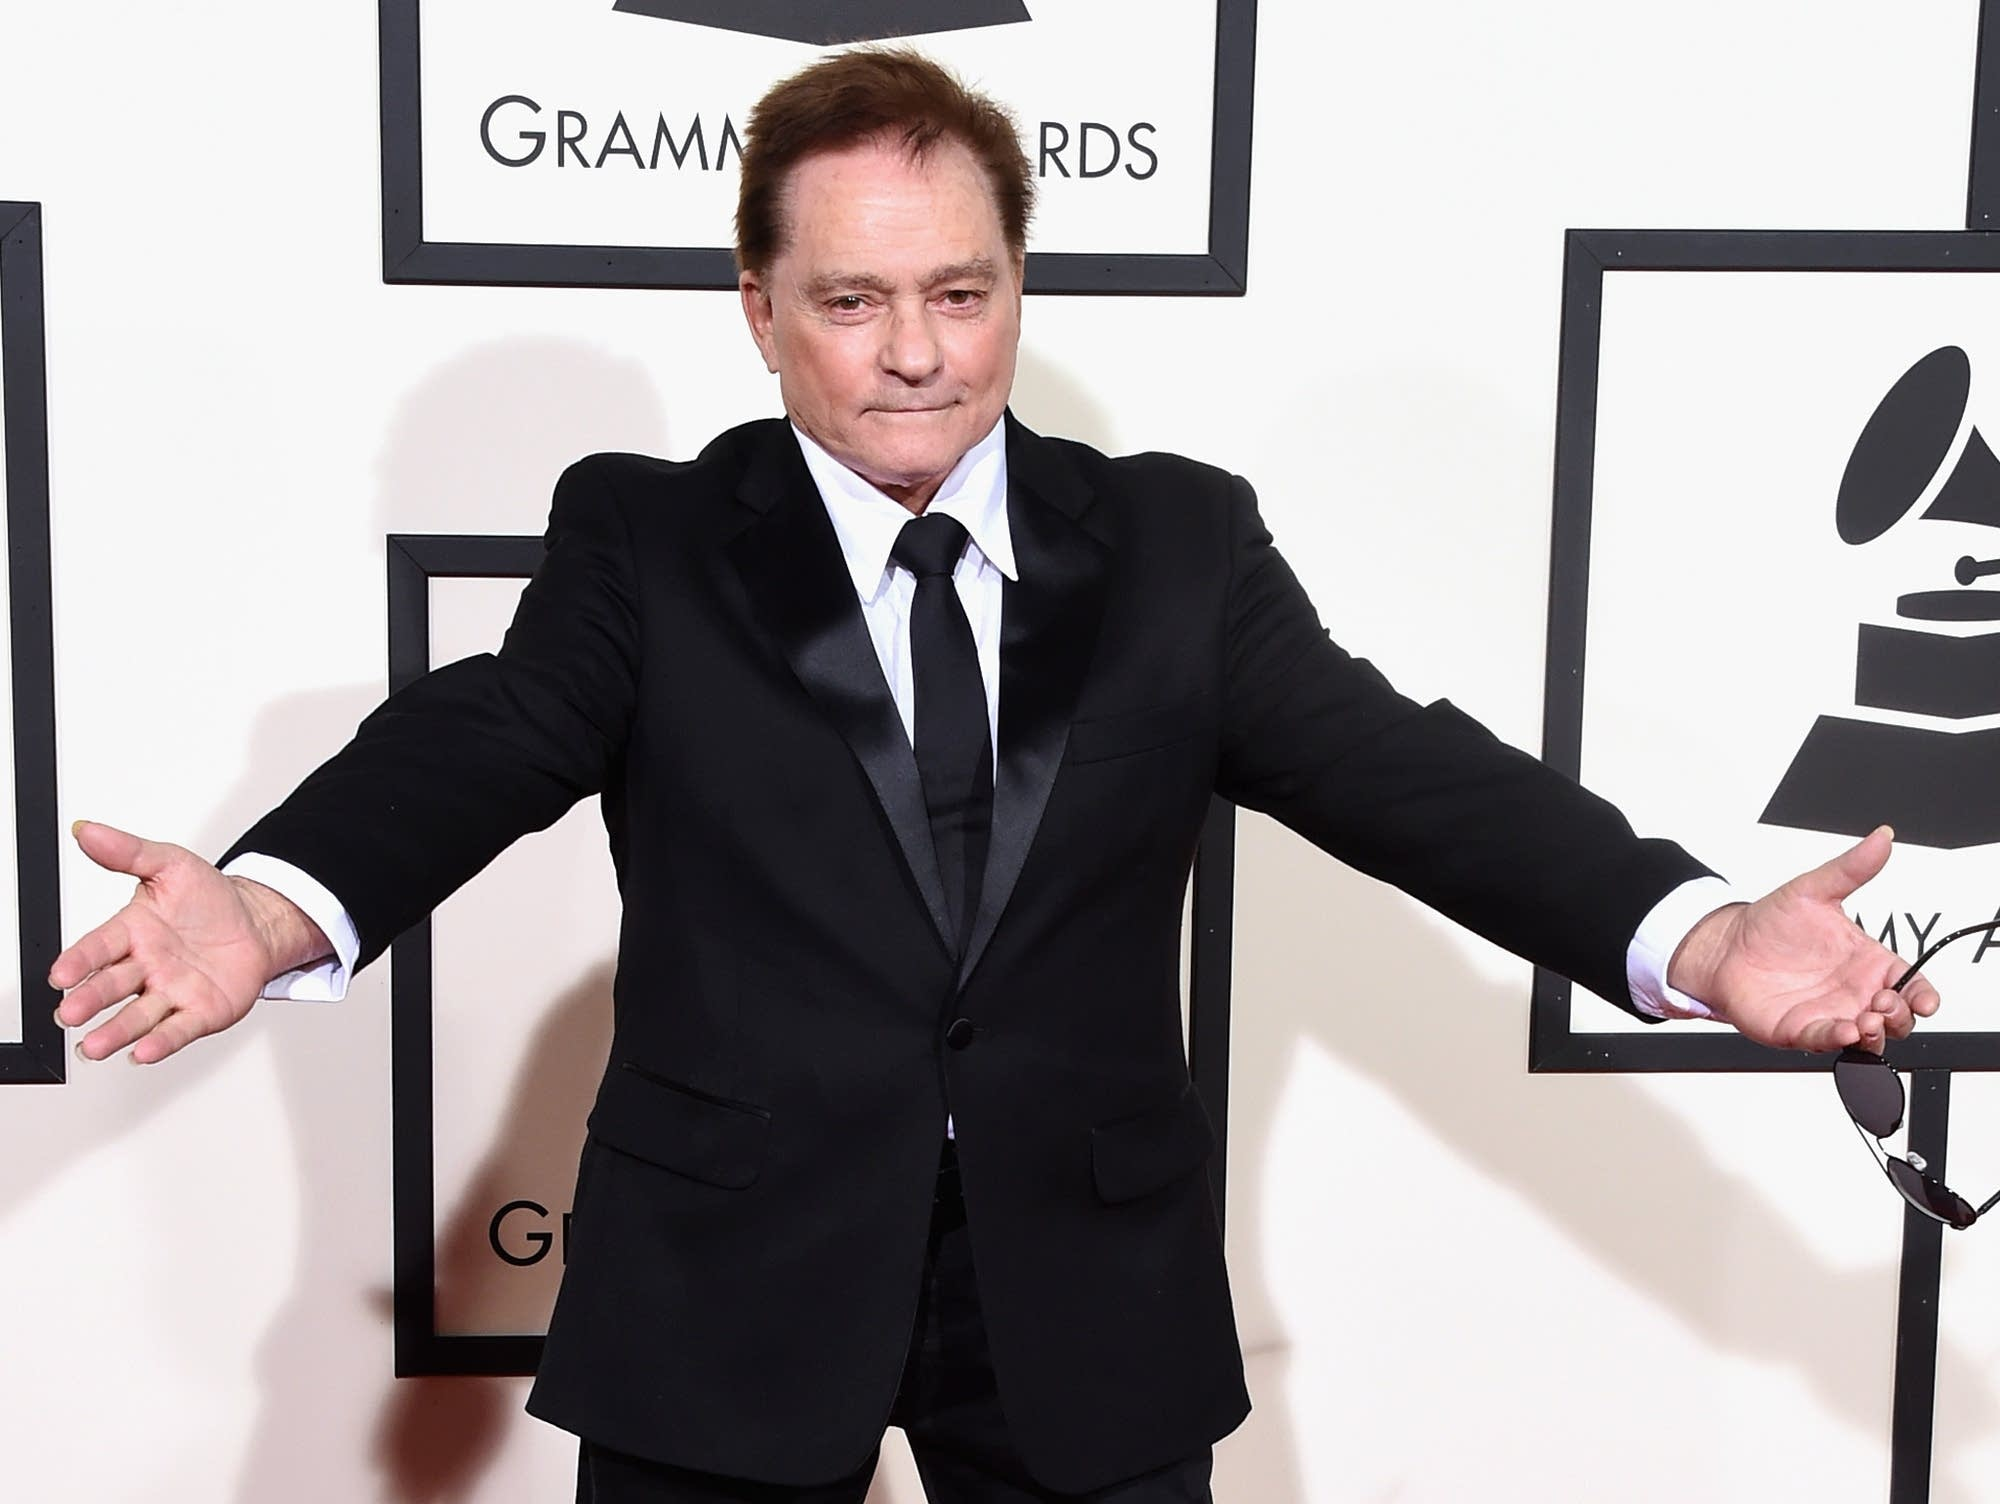 Marty Balin at the Grammys in 2016.